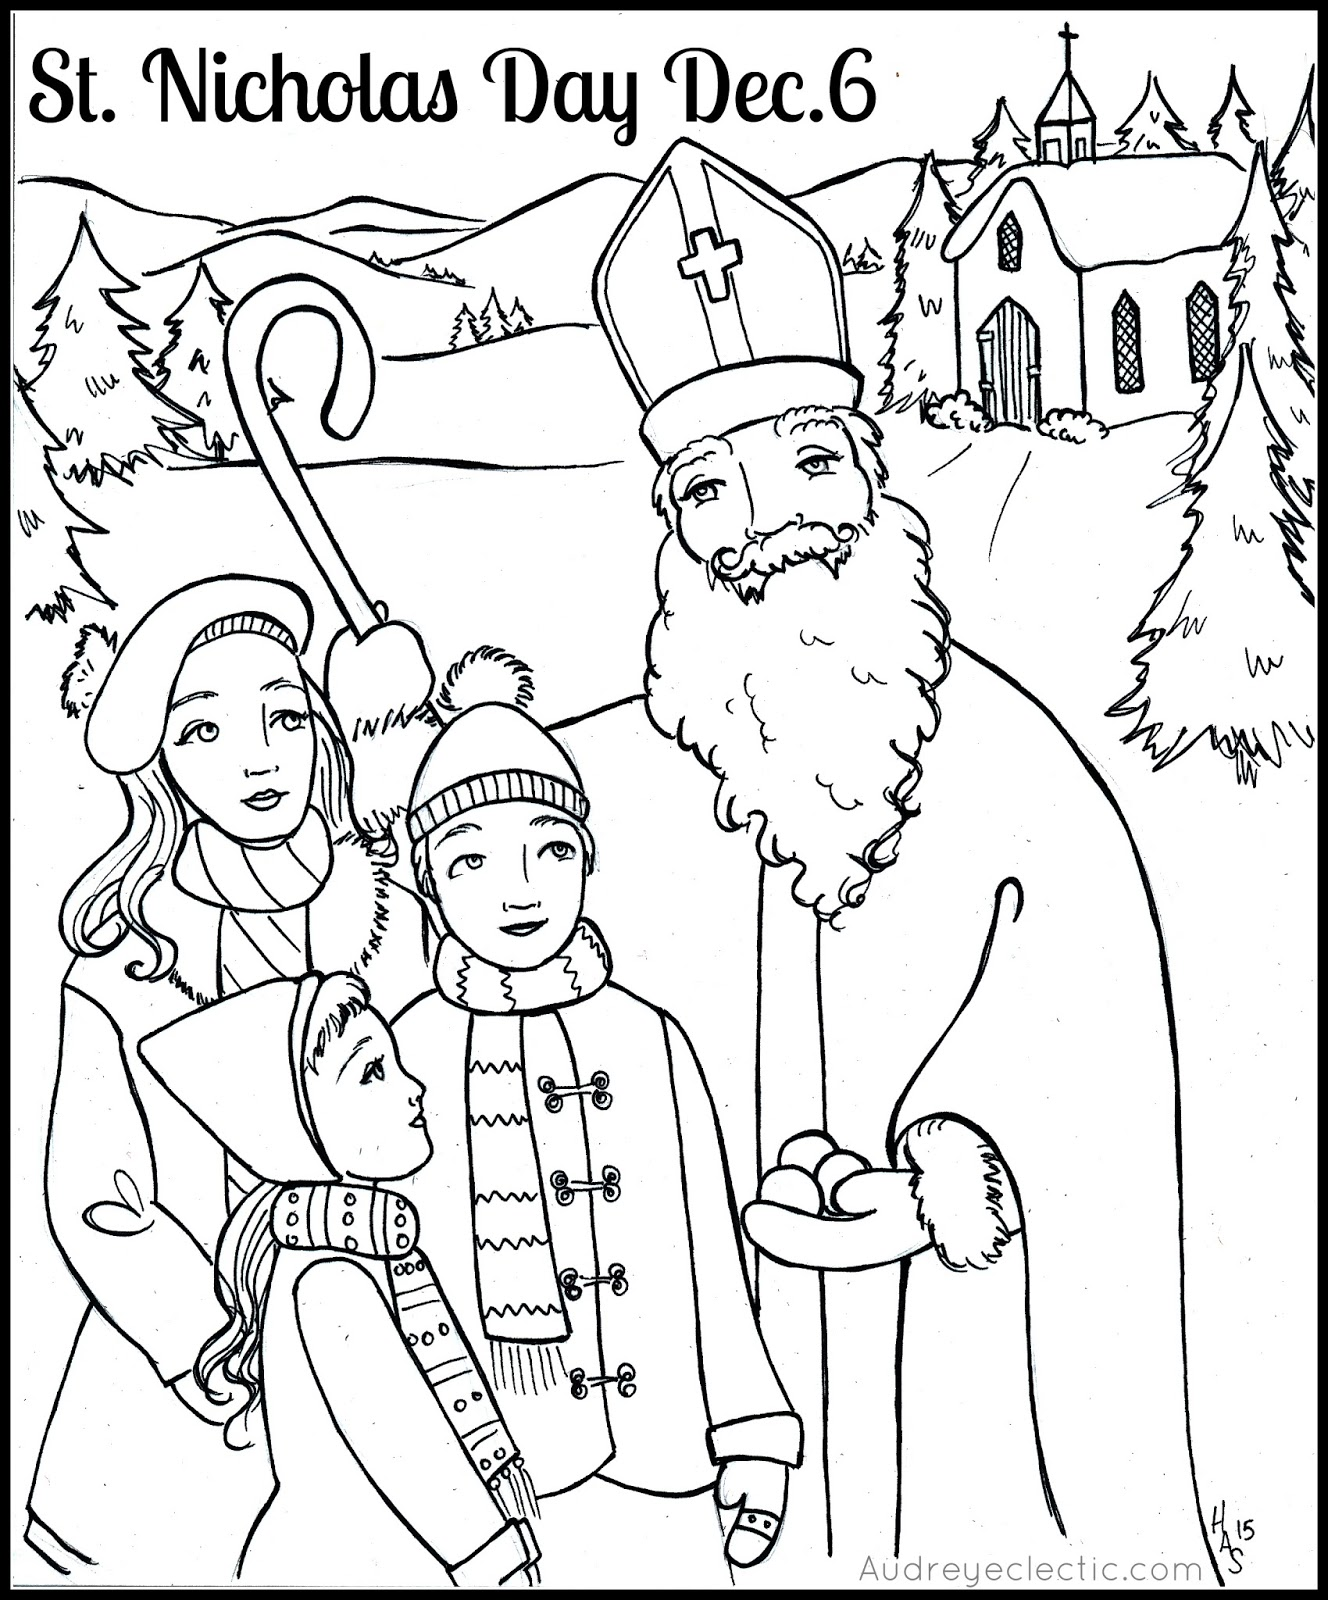 FREE Printable St Nicholas Day Sleightholm Folk Art